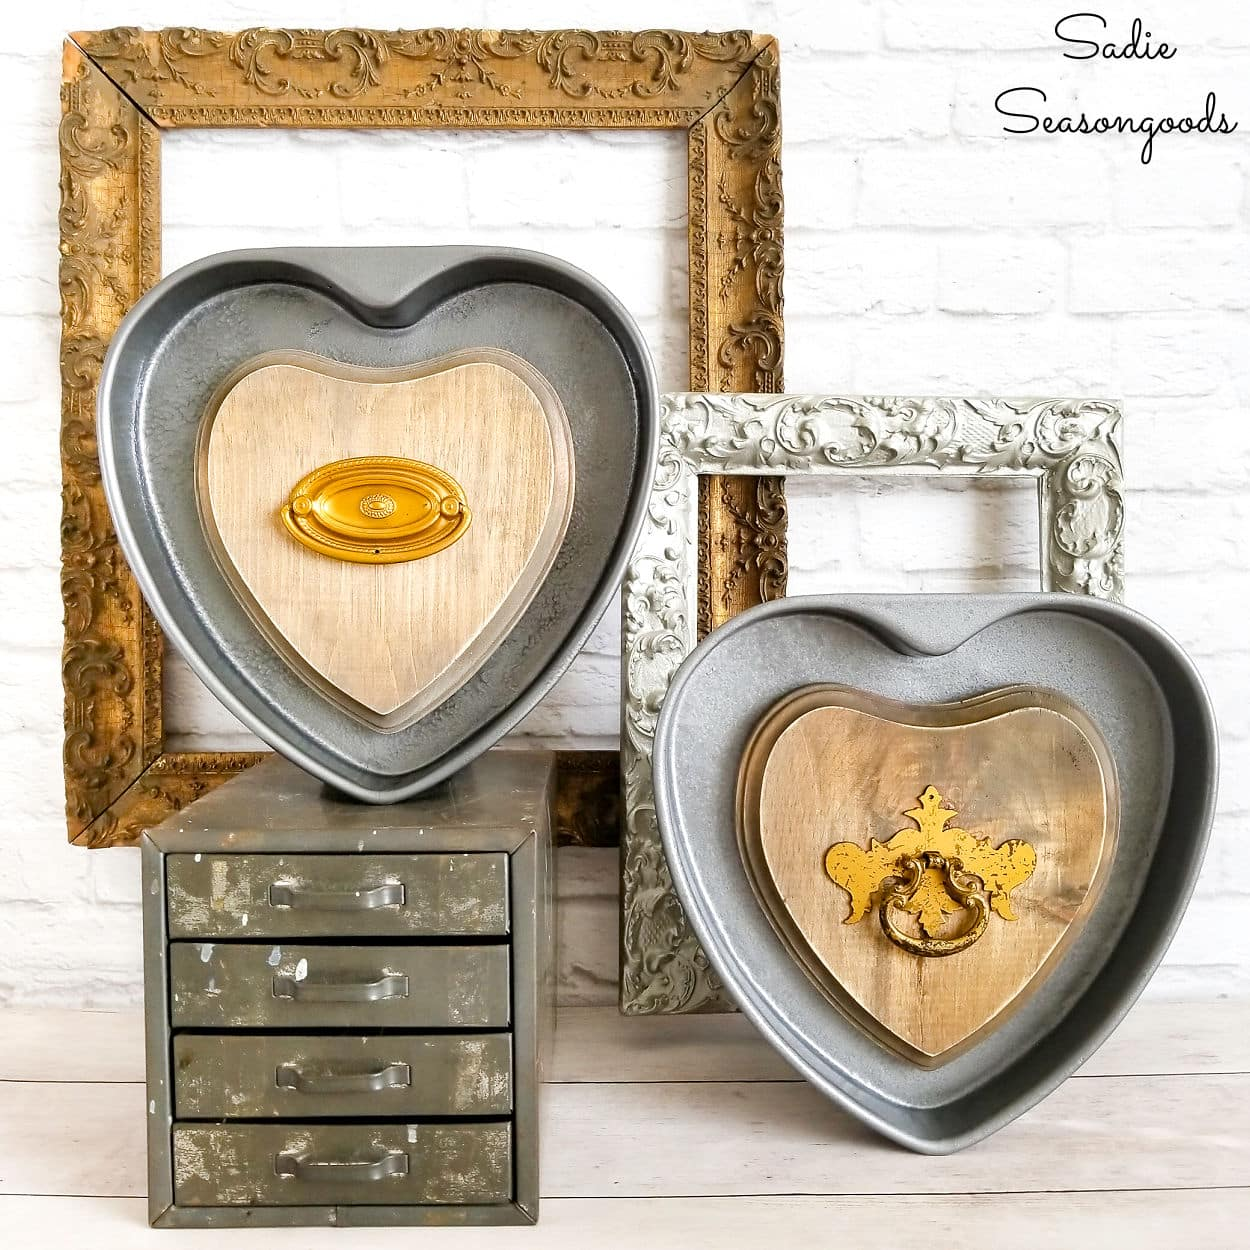 Valentine's Day Home Decor from Heart Cake Pans